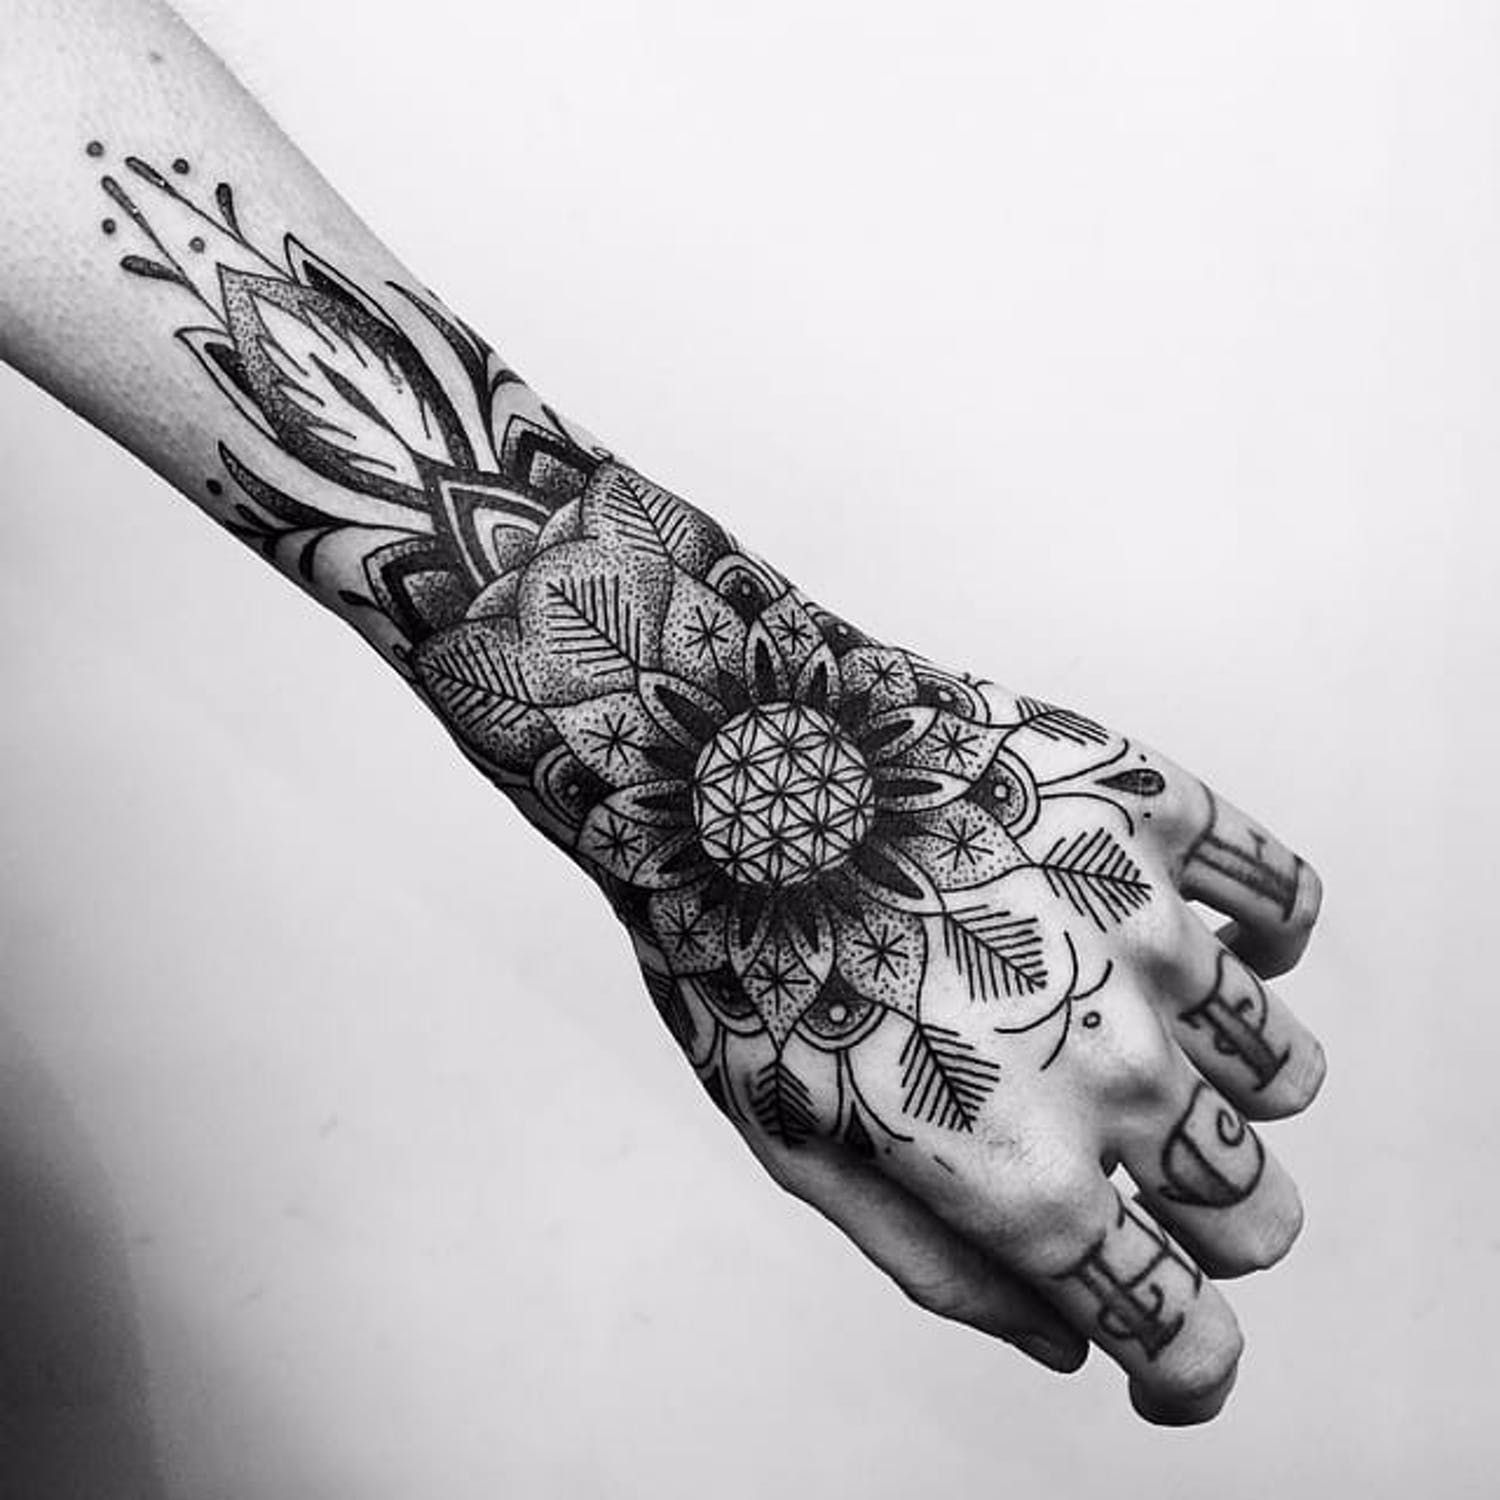 21 Sempiternal Bring Me The Horizon Tattoos Mandala hand